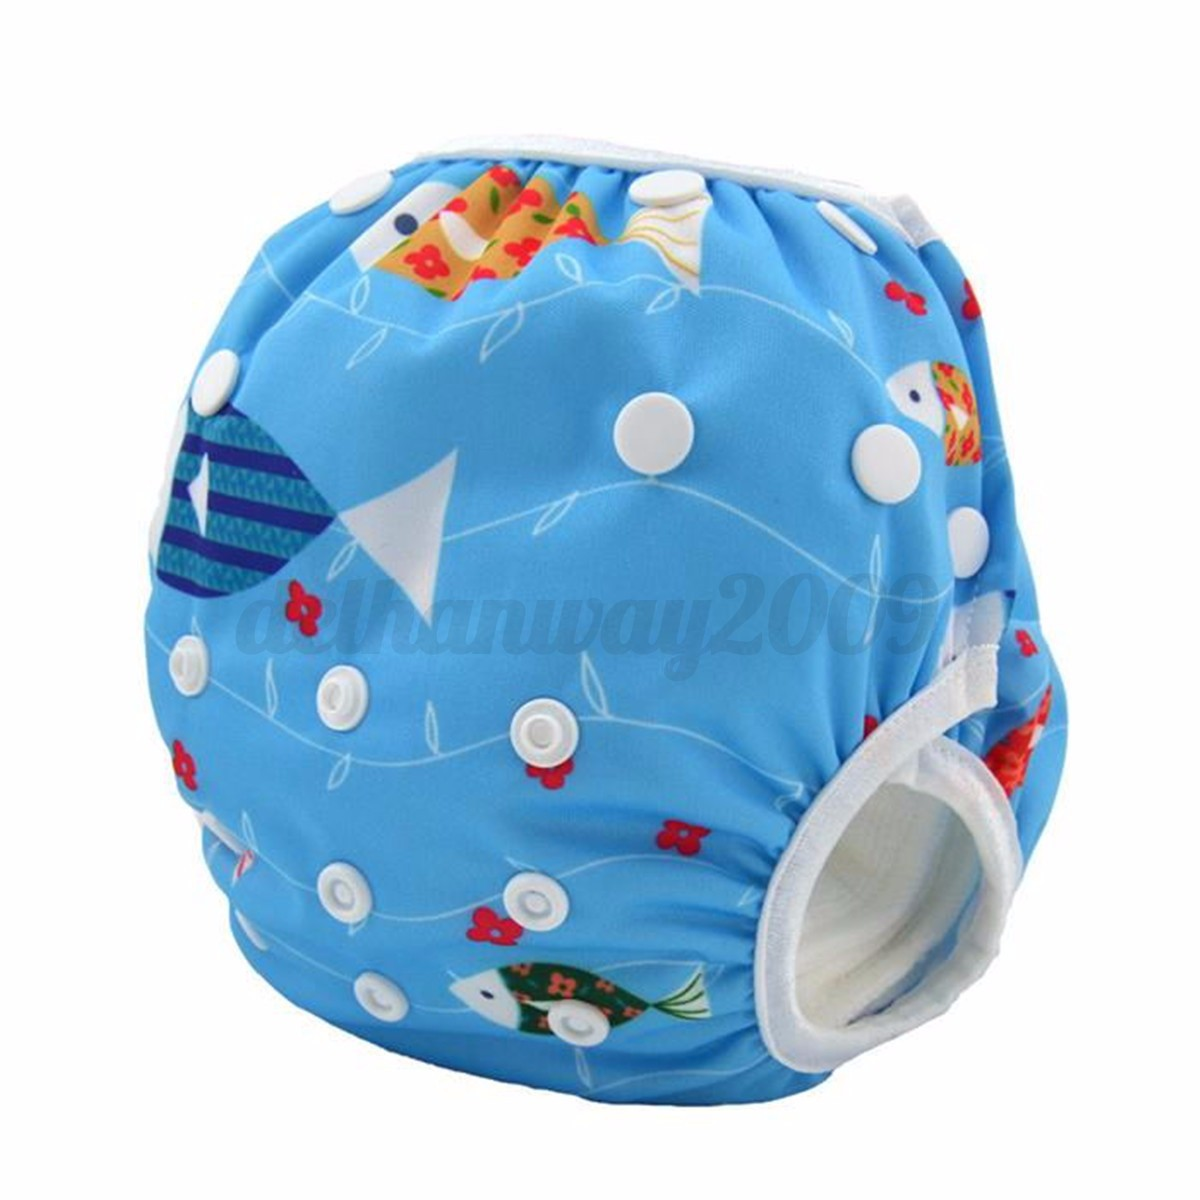 B b piscine langes couche culotte housse couches for Bebe couche piscine